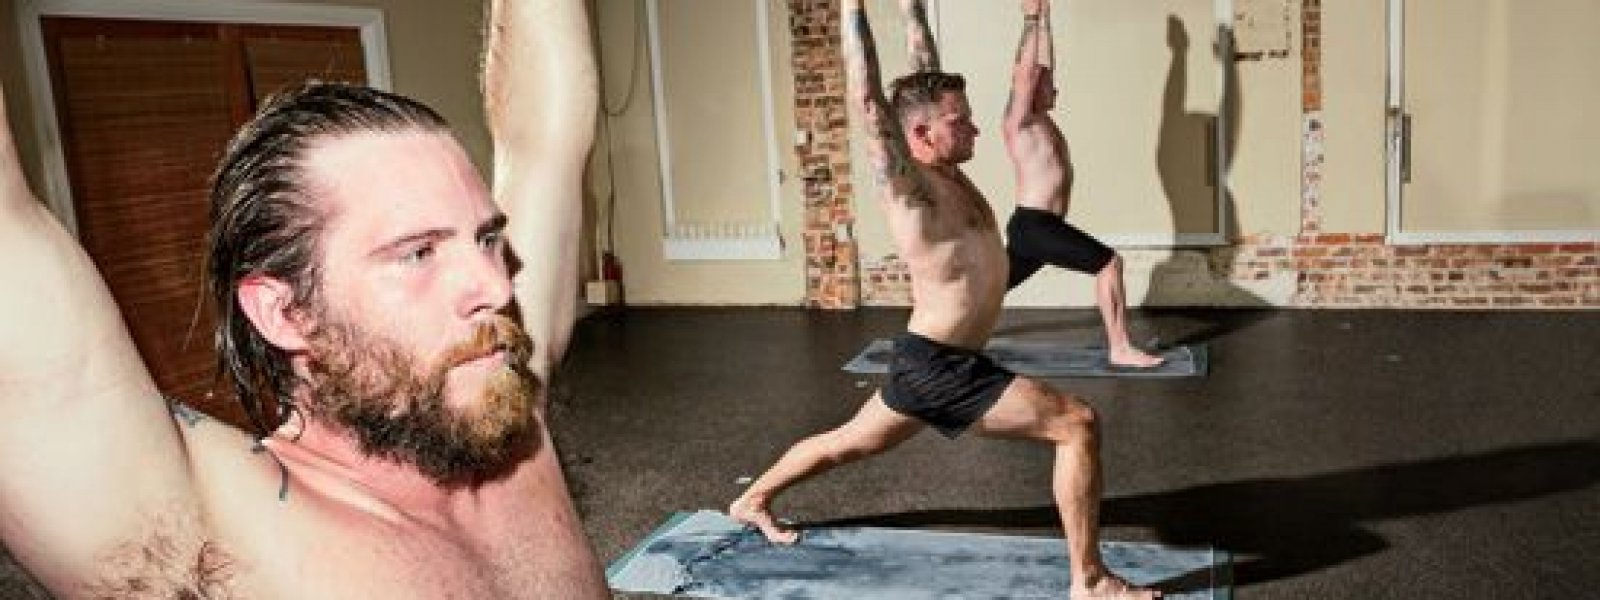 If the special forces are doing yoga